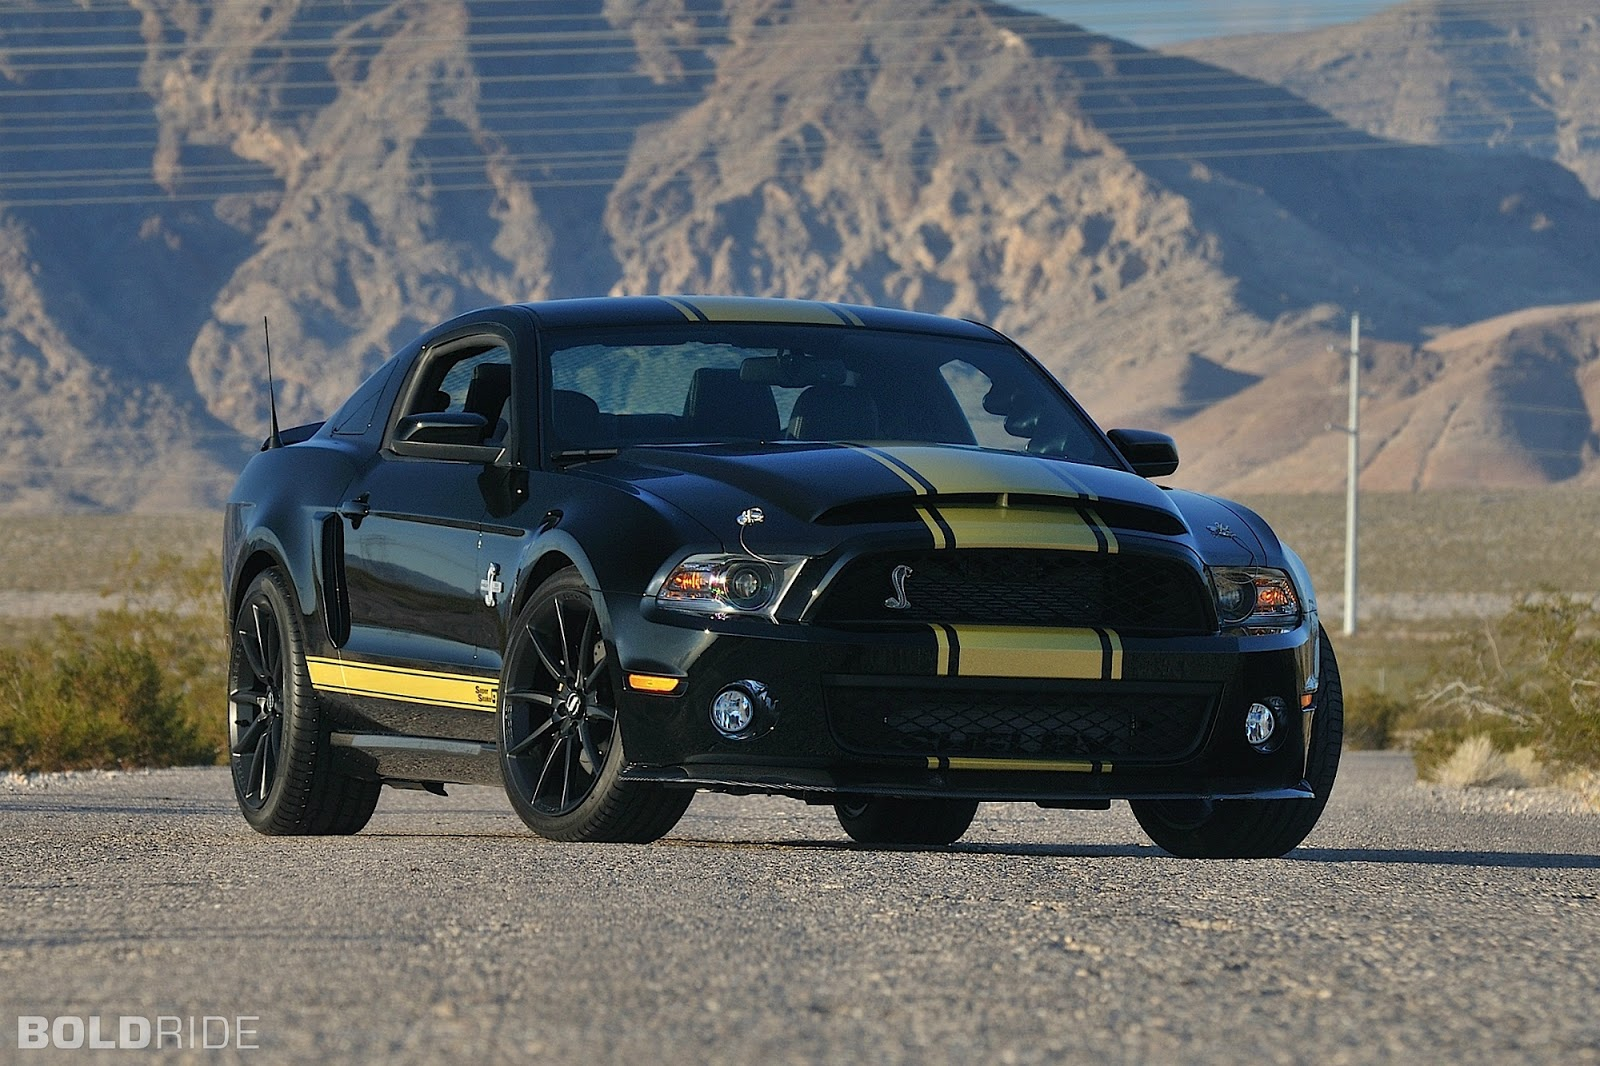 shelby announces 2013 gt500 super snake with up to 850 horsepower - 2011 Ford Mustang Shelby Gt500 With Shelby Super Snake Package